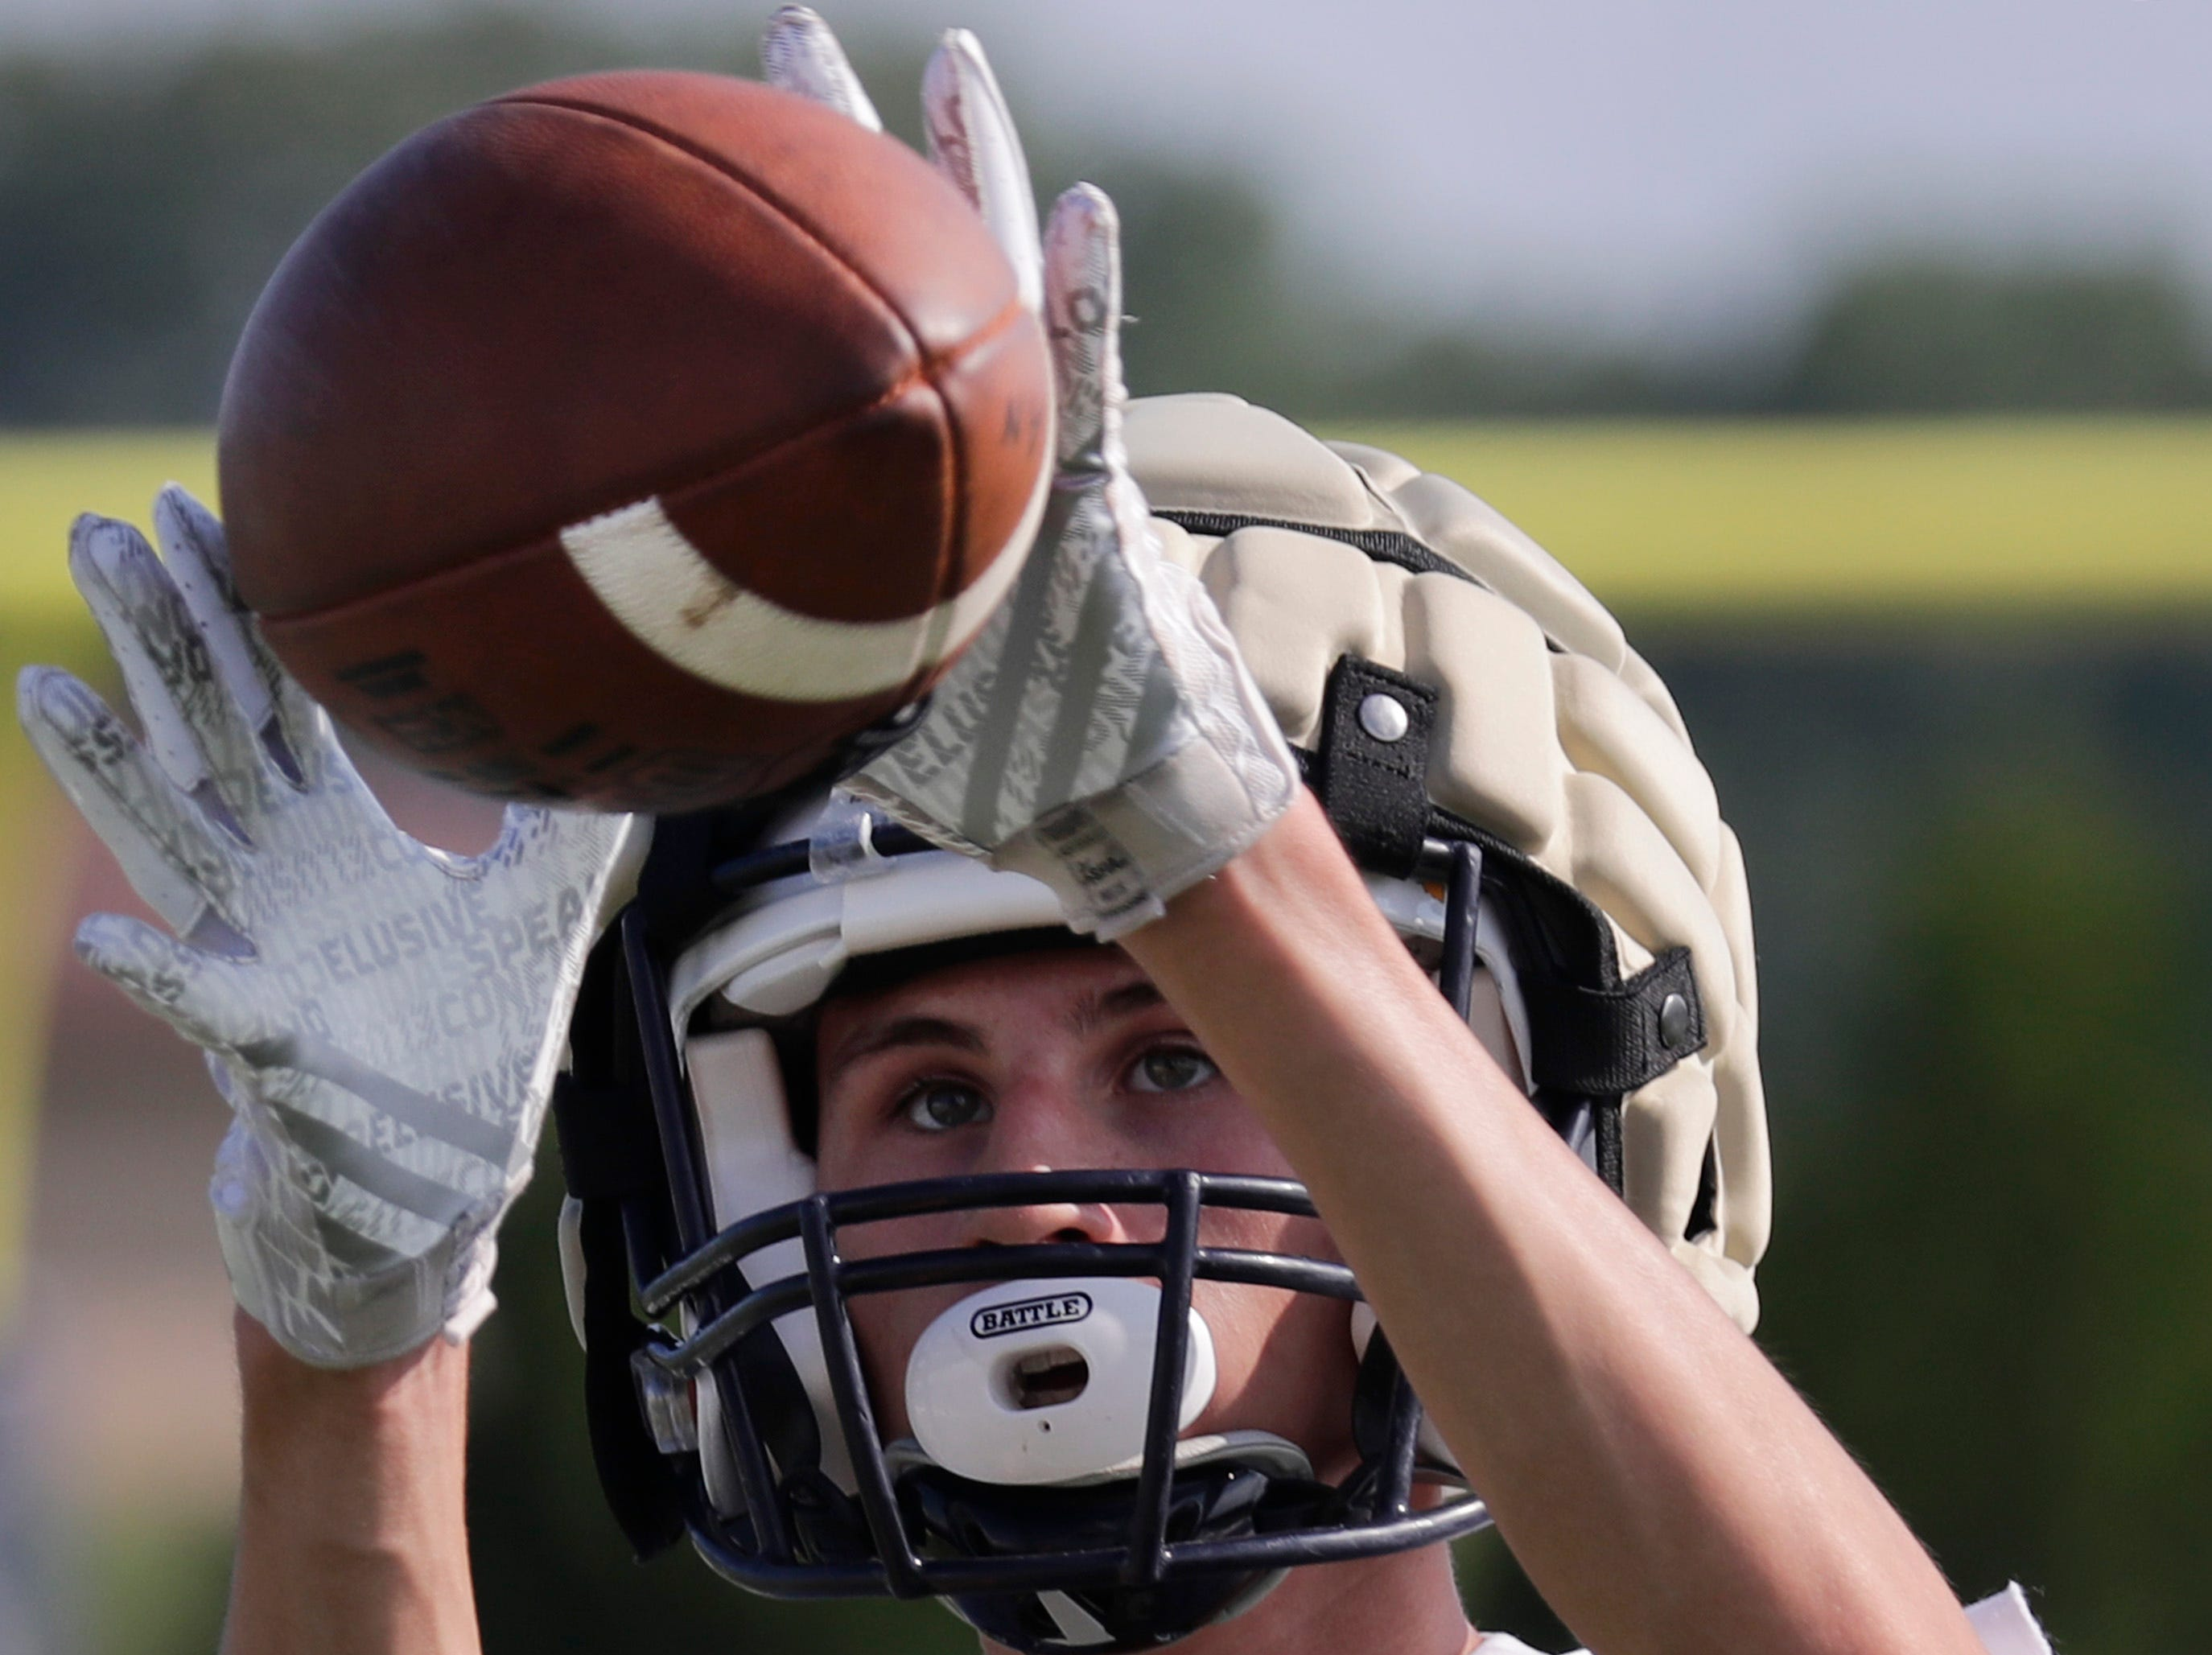 Appleton North Lightning's Drew Peters catches a pass during practice on Wednesday August 1, 2018 at Appleton North High School in Appleton Wis.